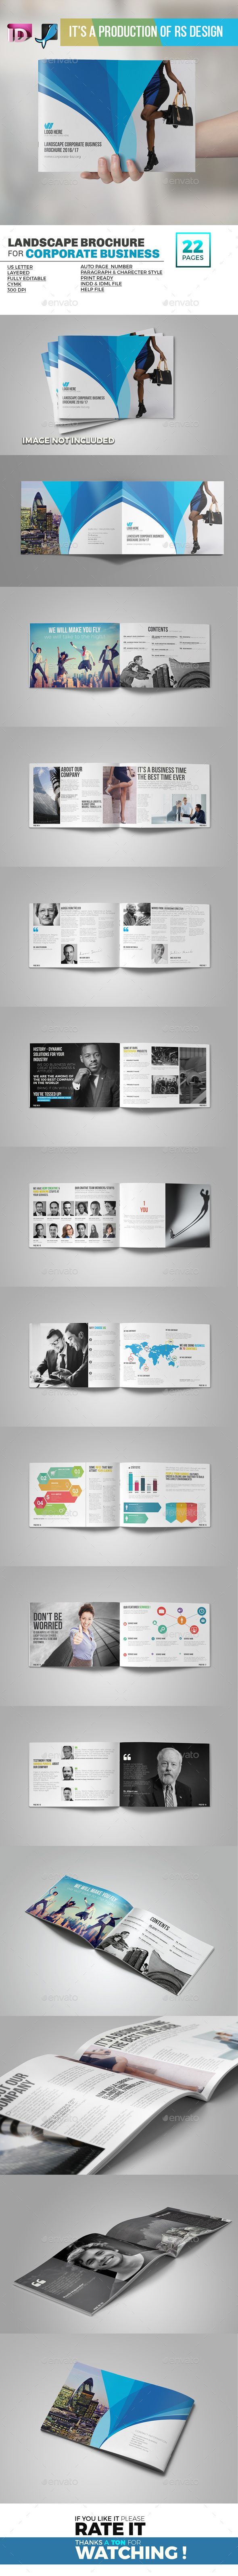 Landscape Corporate Brochure Template InDesign INDD. Download here: http://graphicriver.net/item/landscape-corporate-brochure-/16689254?ref=ksioks